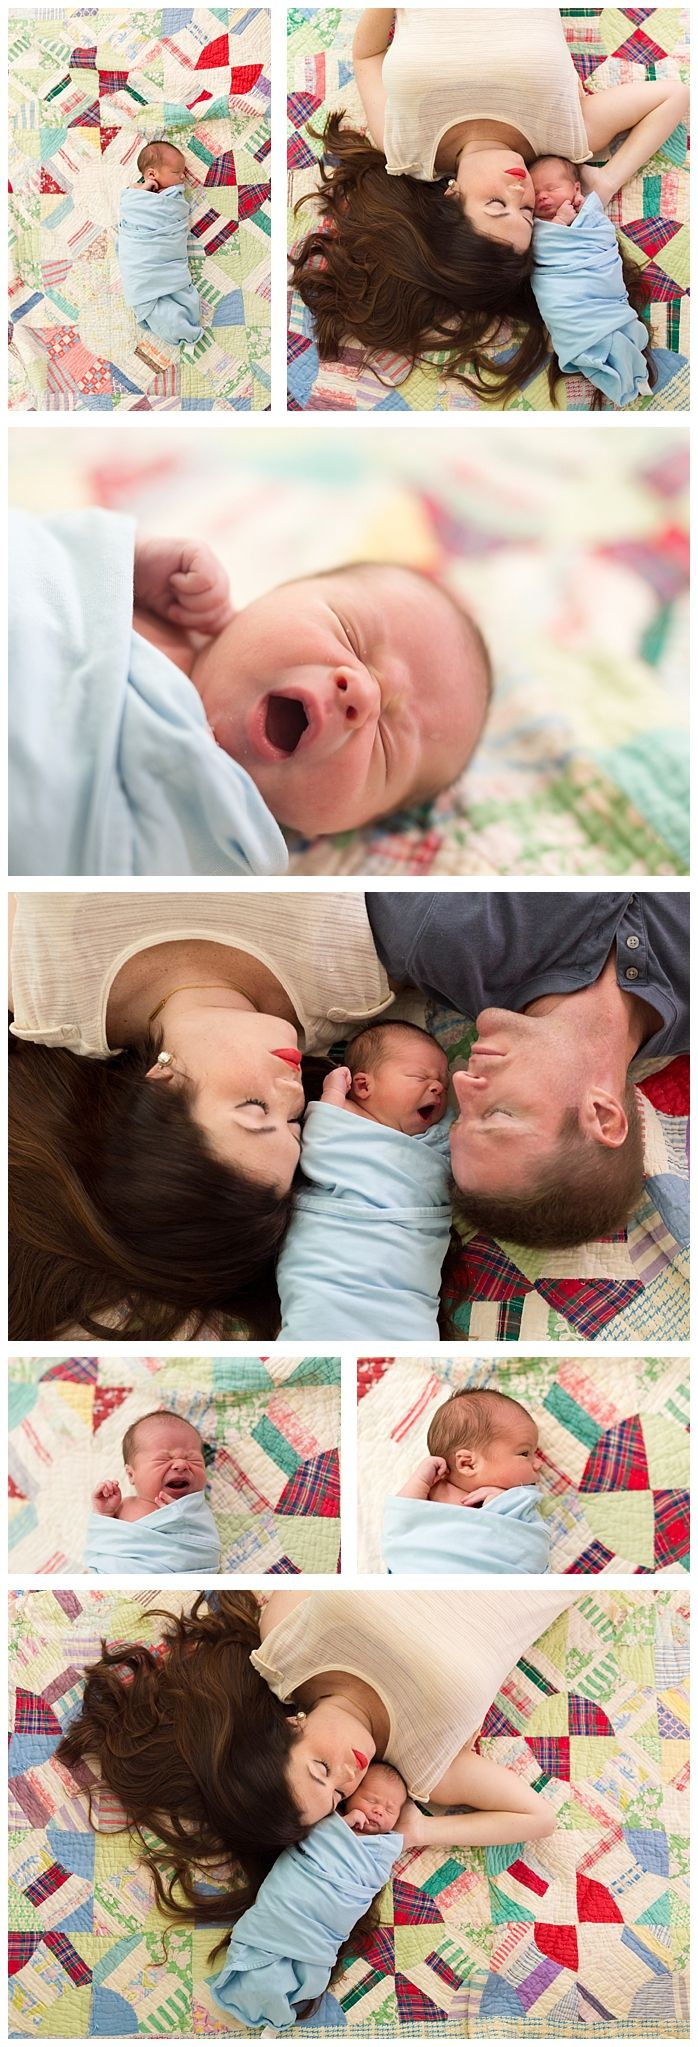 Sweet Family Photos With Newborn Parents And Vintage Quilt Ocean Springs Mississippi